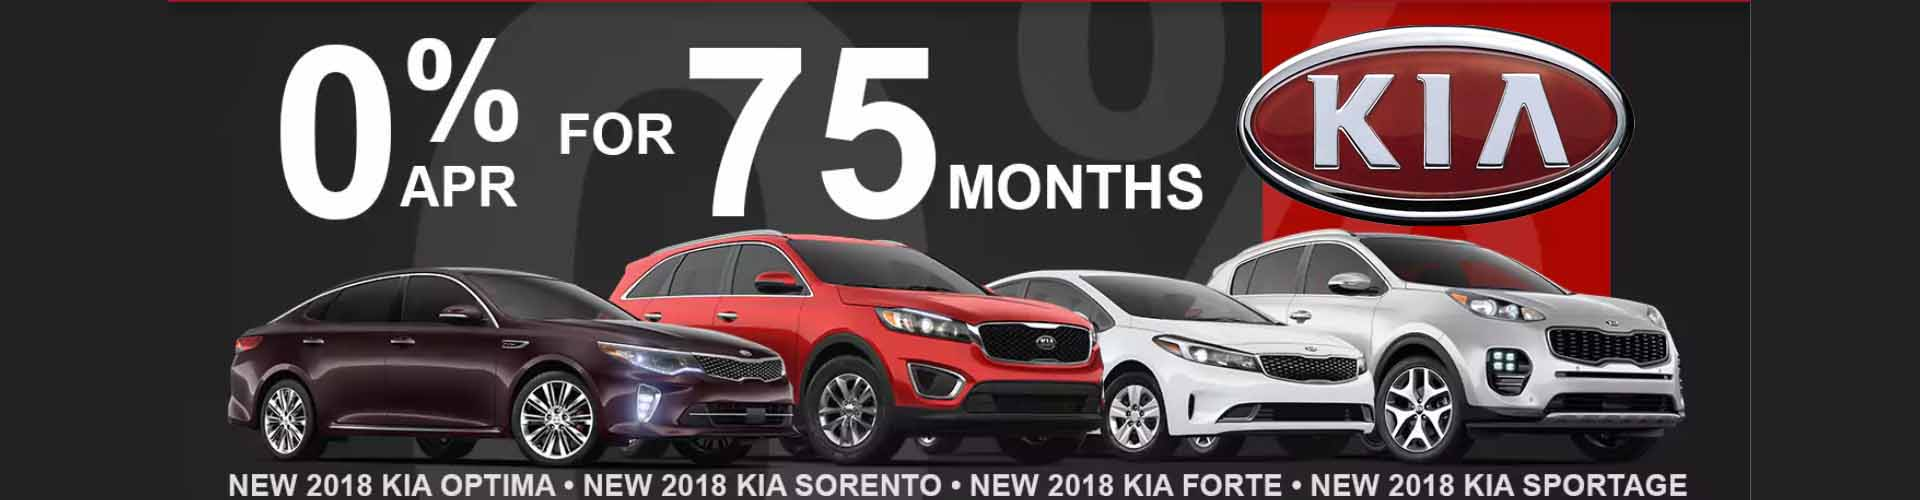 Kia's 0 FOR 75 MONTHS Sale at Kia of Lincoln